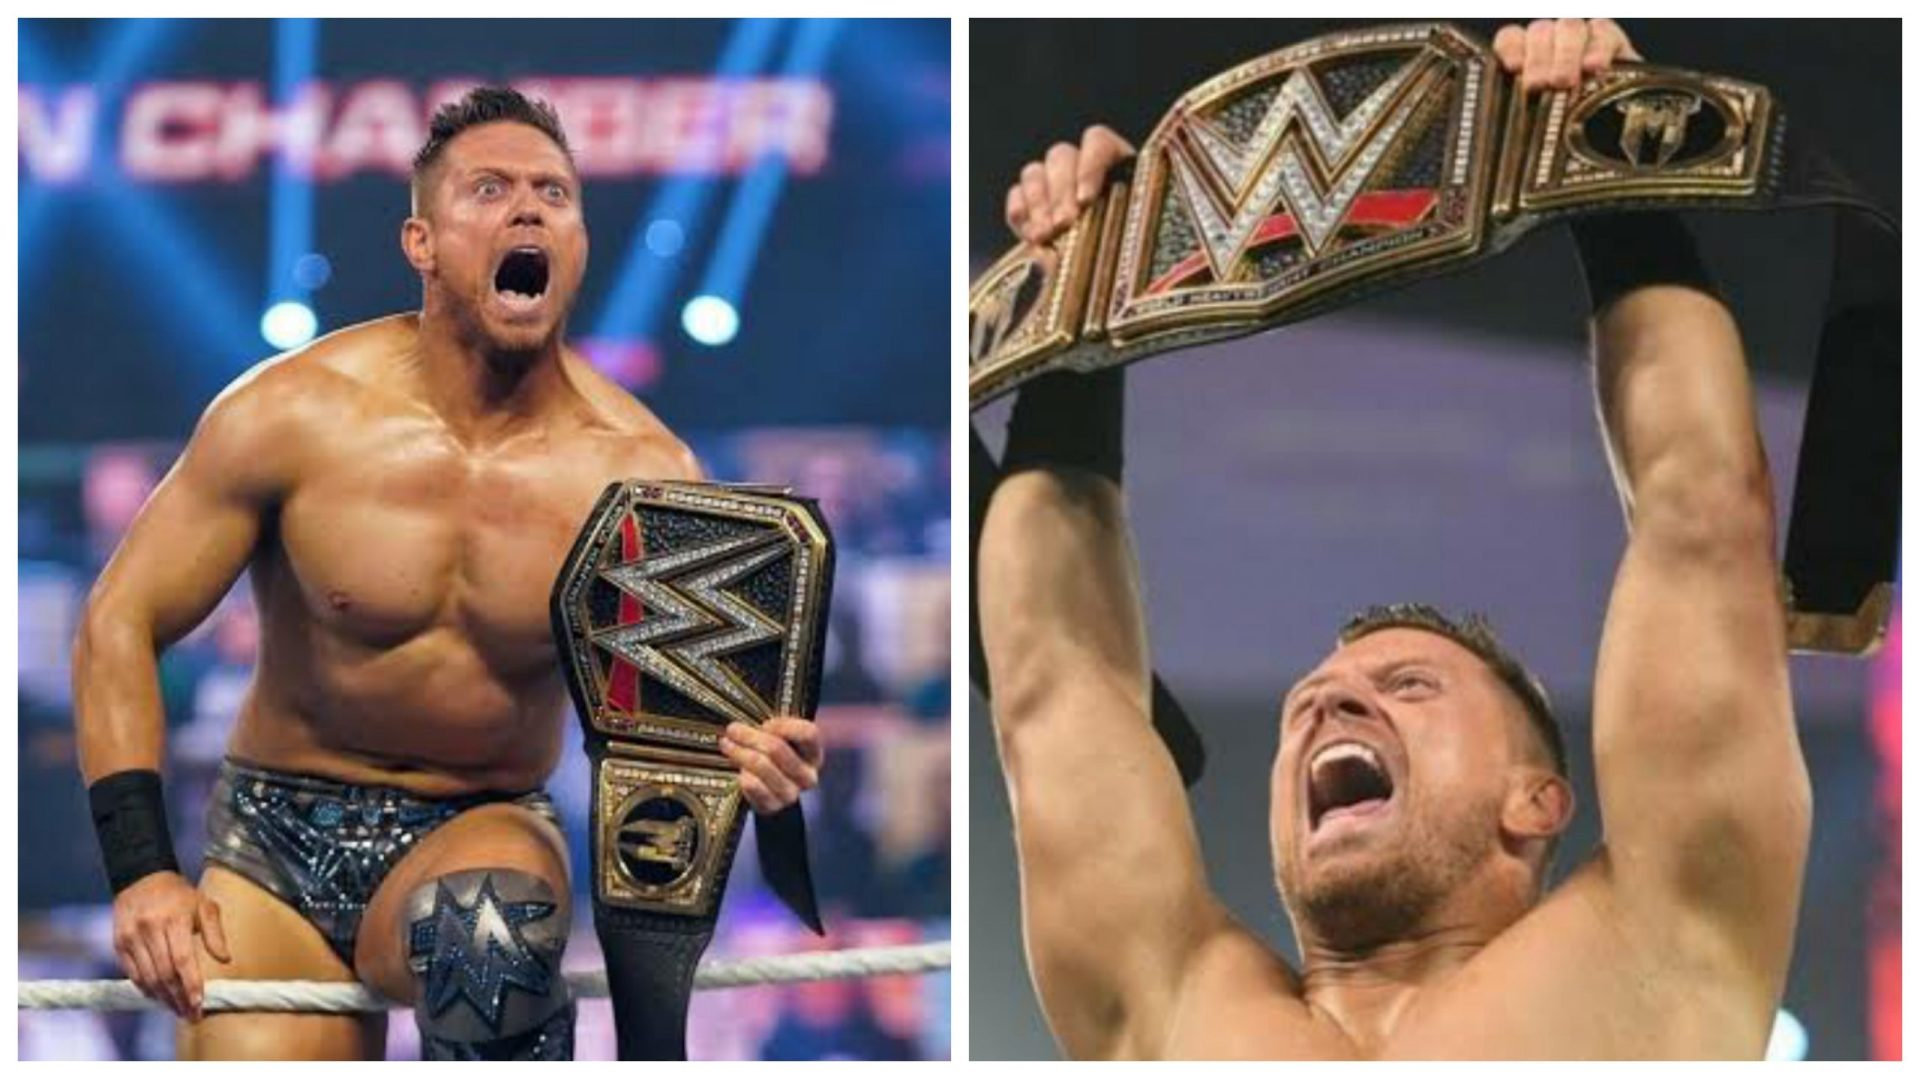 The Miz cashes in MITB, becomes WWE Champion - THE SPORTS ROOM